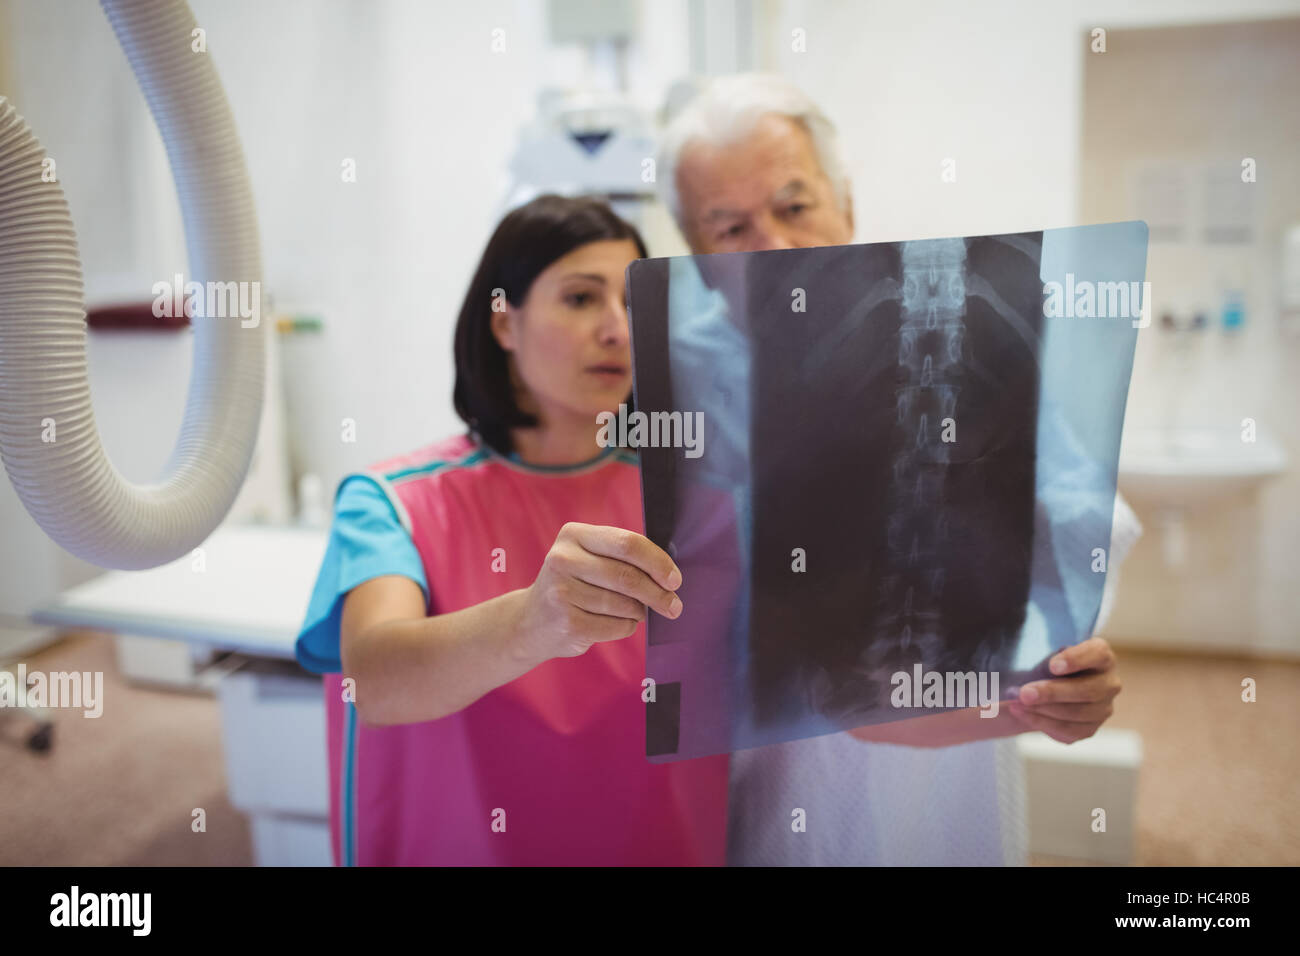 Female doctor discussing x-ray with patient - Stock Image